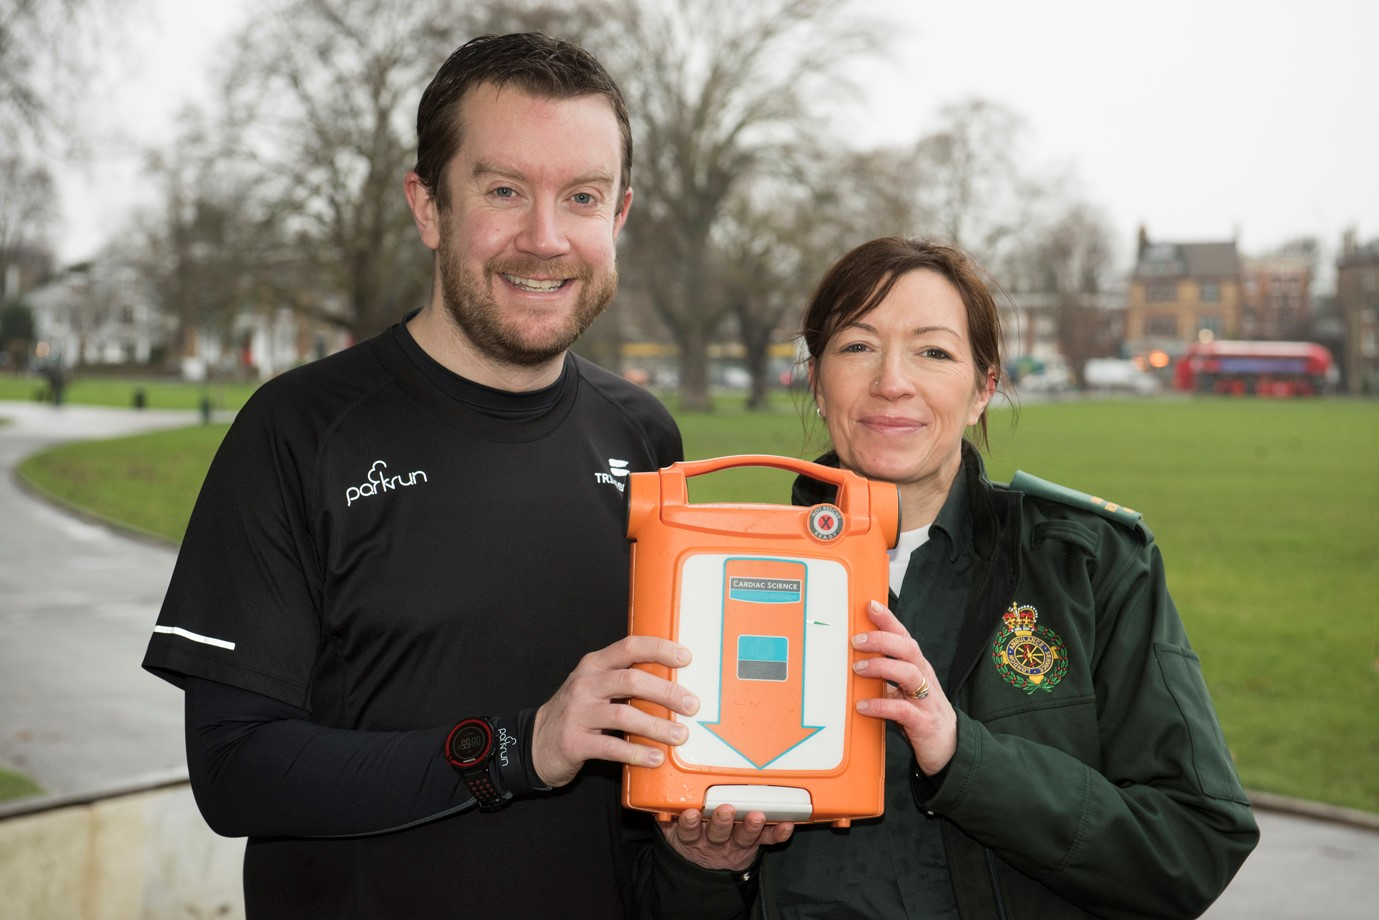 Neil Cole is raising money for park defibrillators after surviving a cardiac arrest in 2015